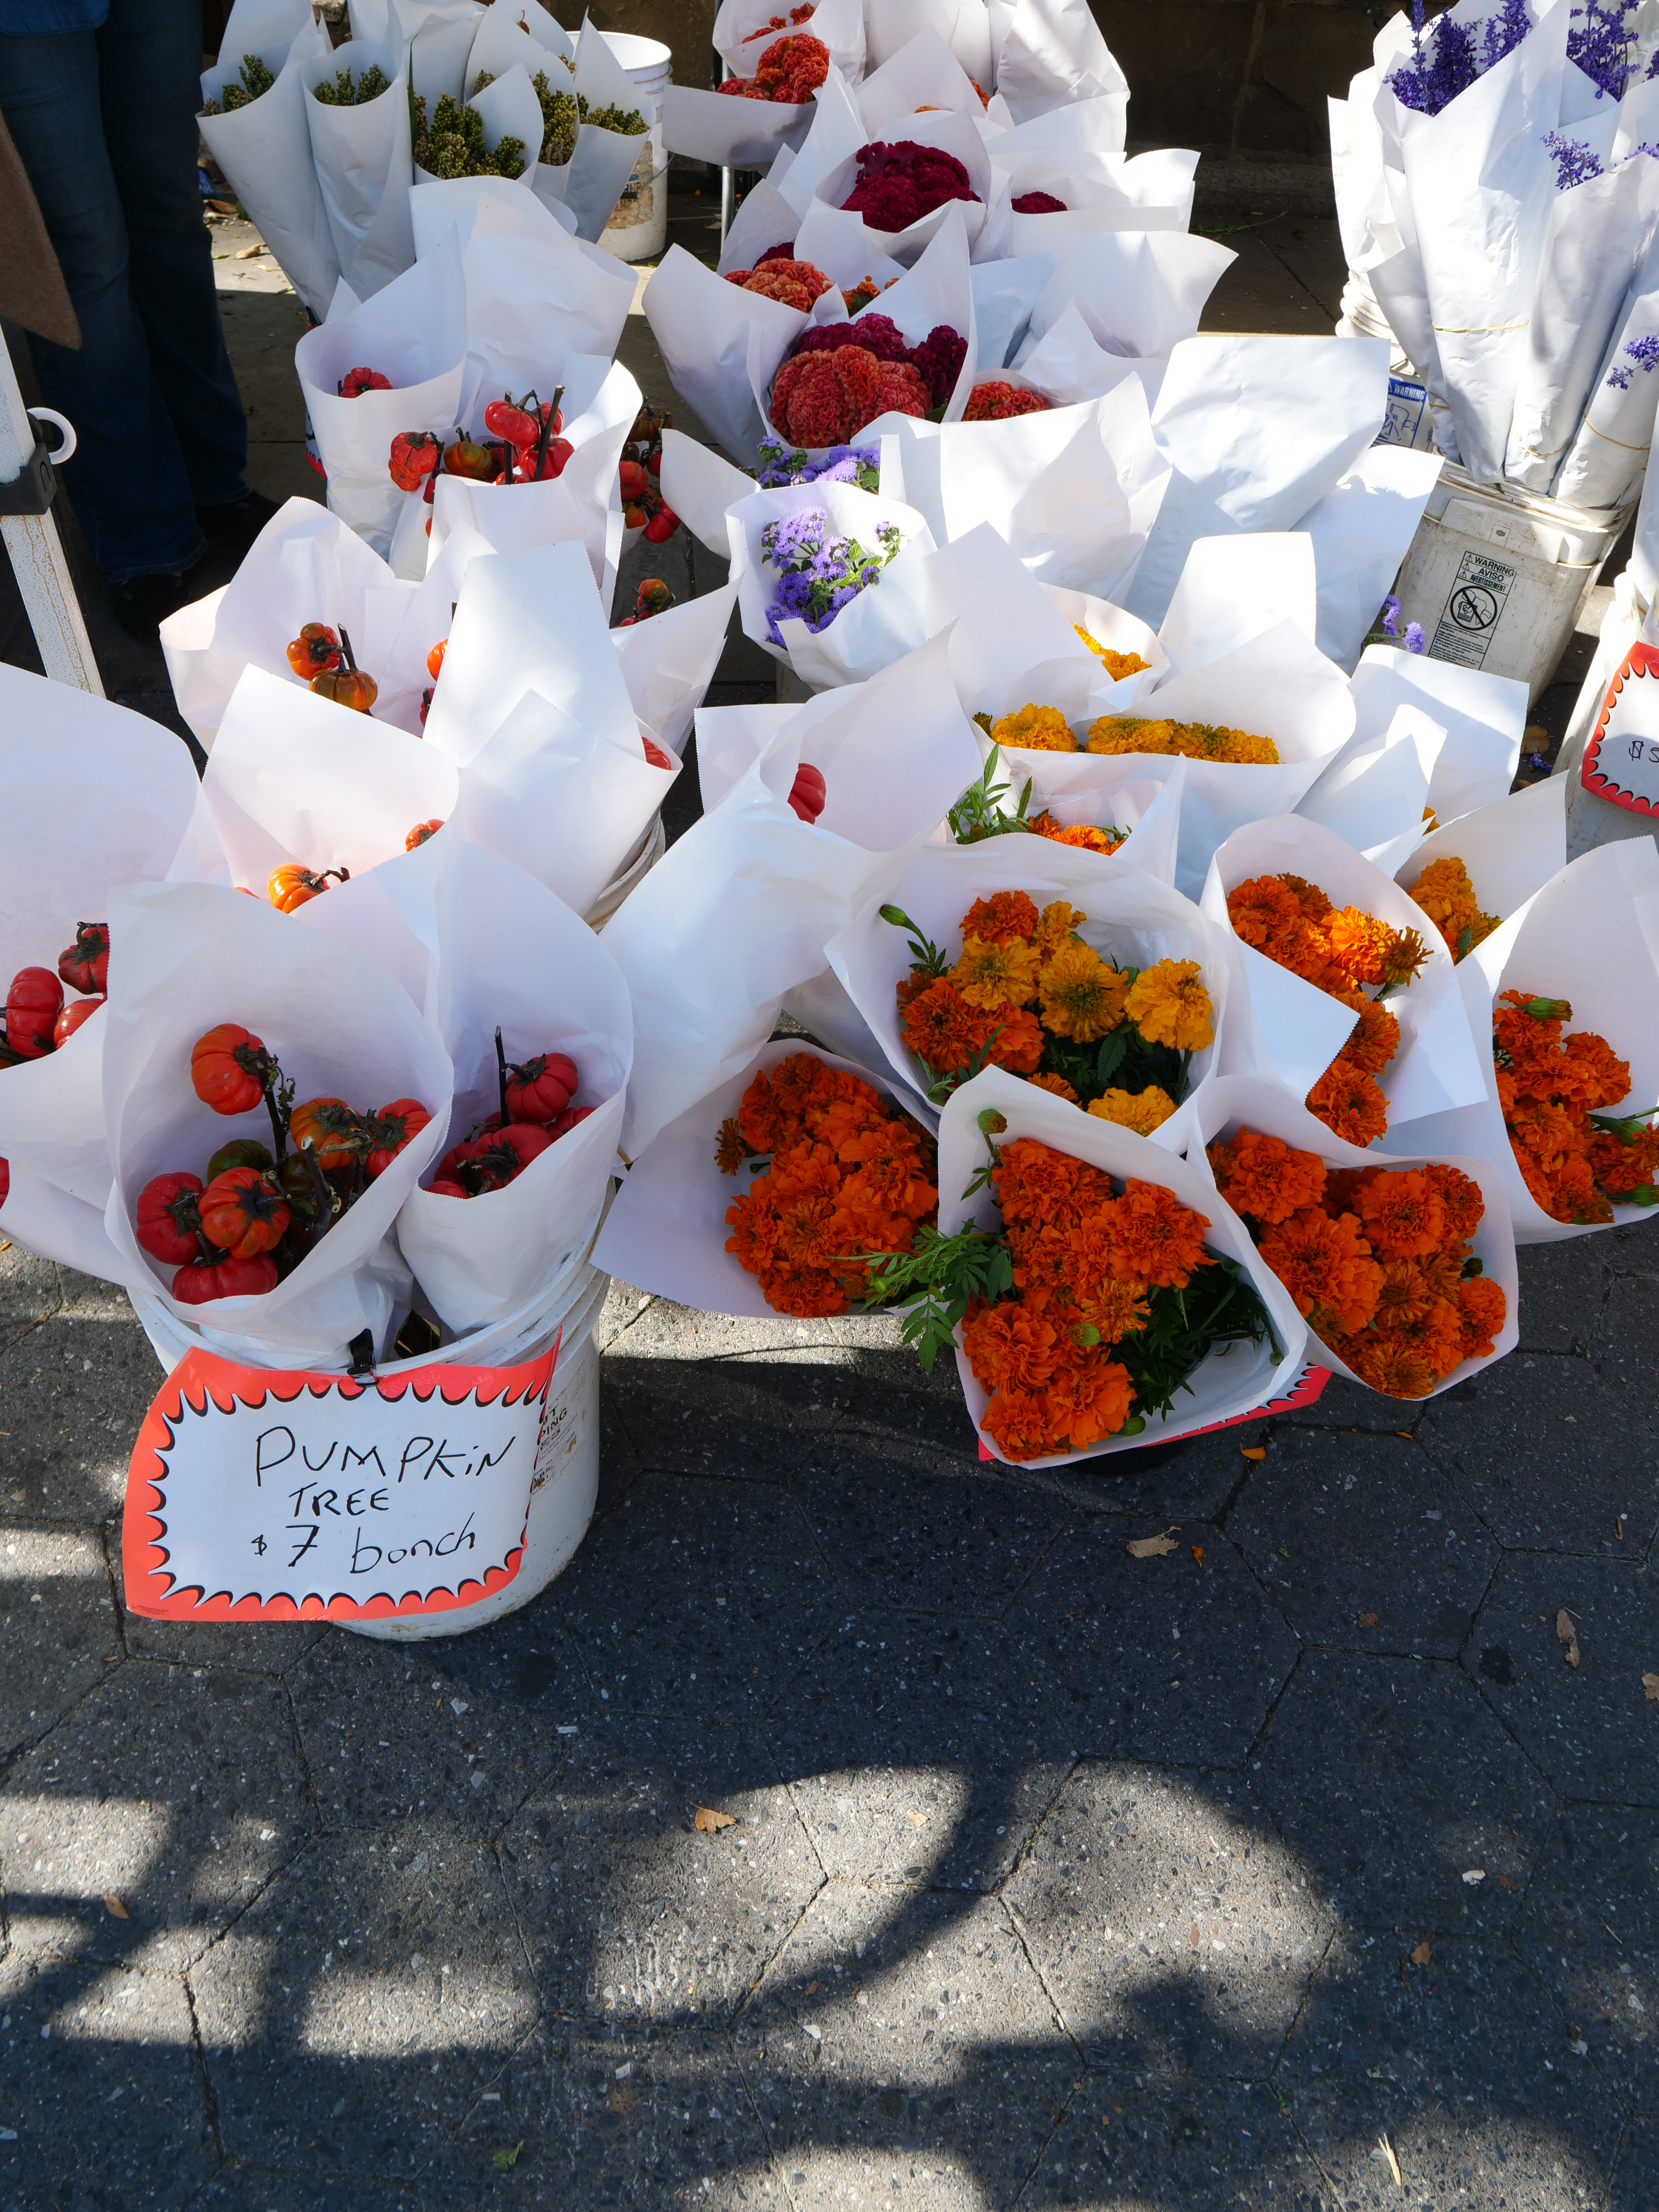 11 Things To Do for Halloween in NYC pumpkin tree Union Square greenmarket